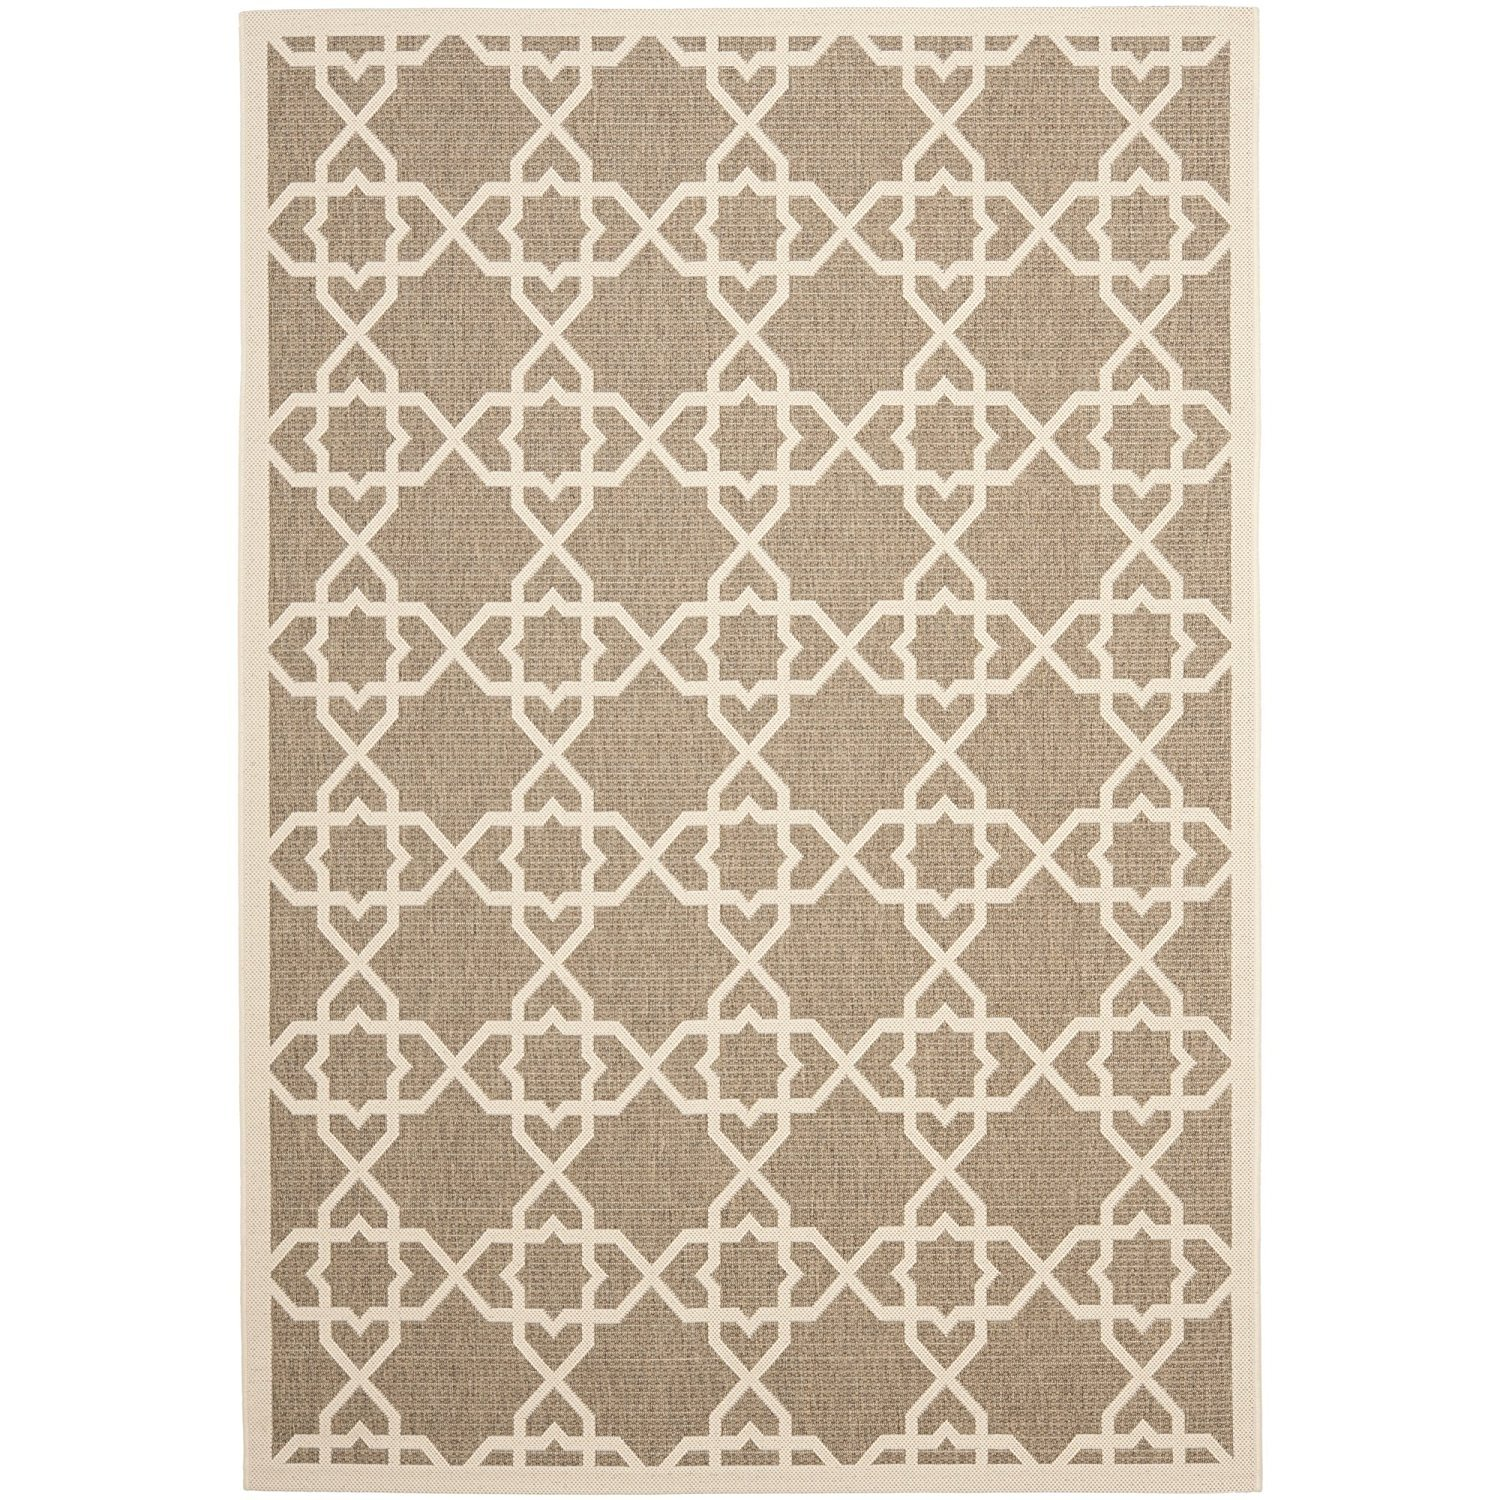 Safavieh Courtyard Collection Cy6032 242 Brown And Beige Indoor